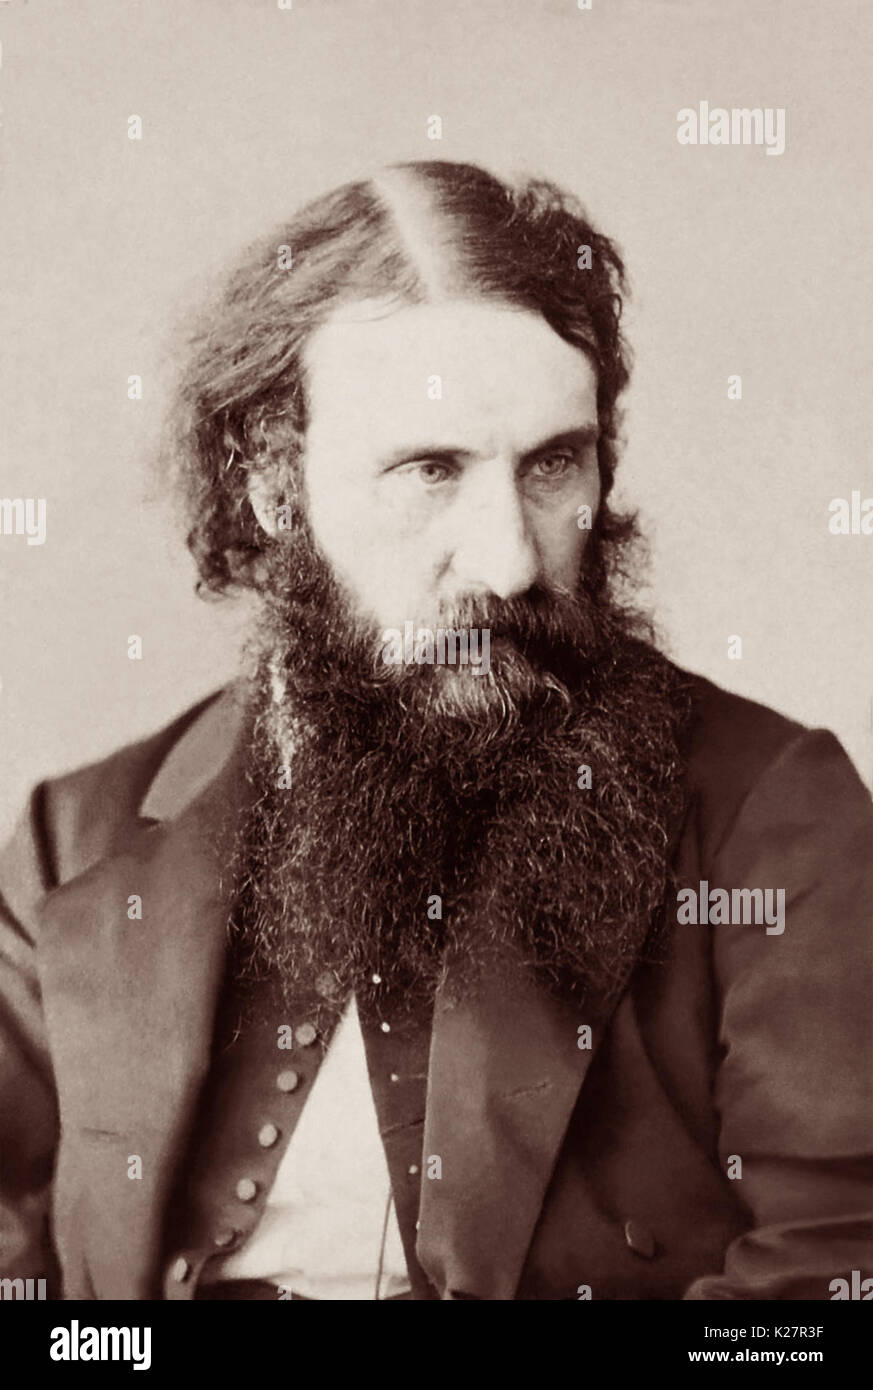 George MacDonald (1824-1905) was a Scottish writer and Christian minister who was a major literary influence on CS Lewis, JRR Tolkien, WH Auden and others. - Stock Image